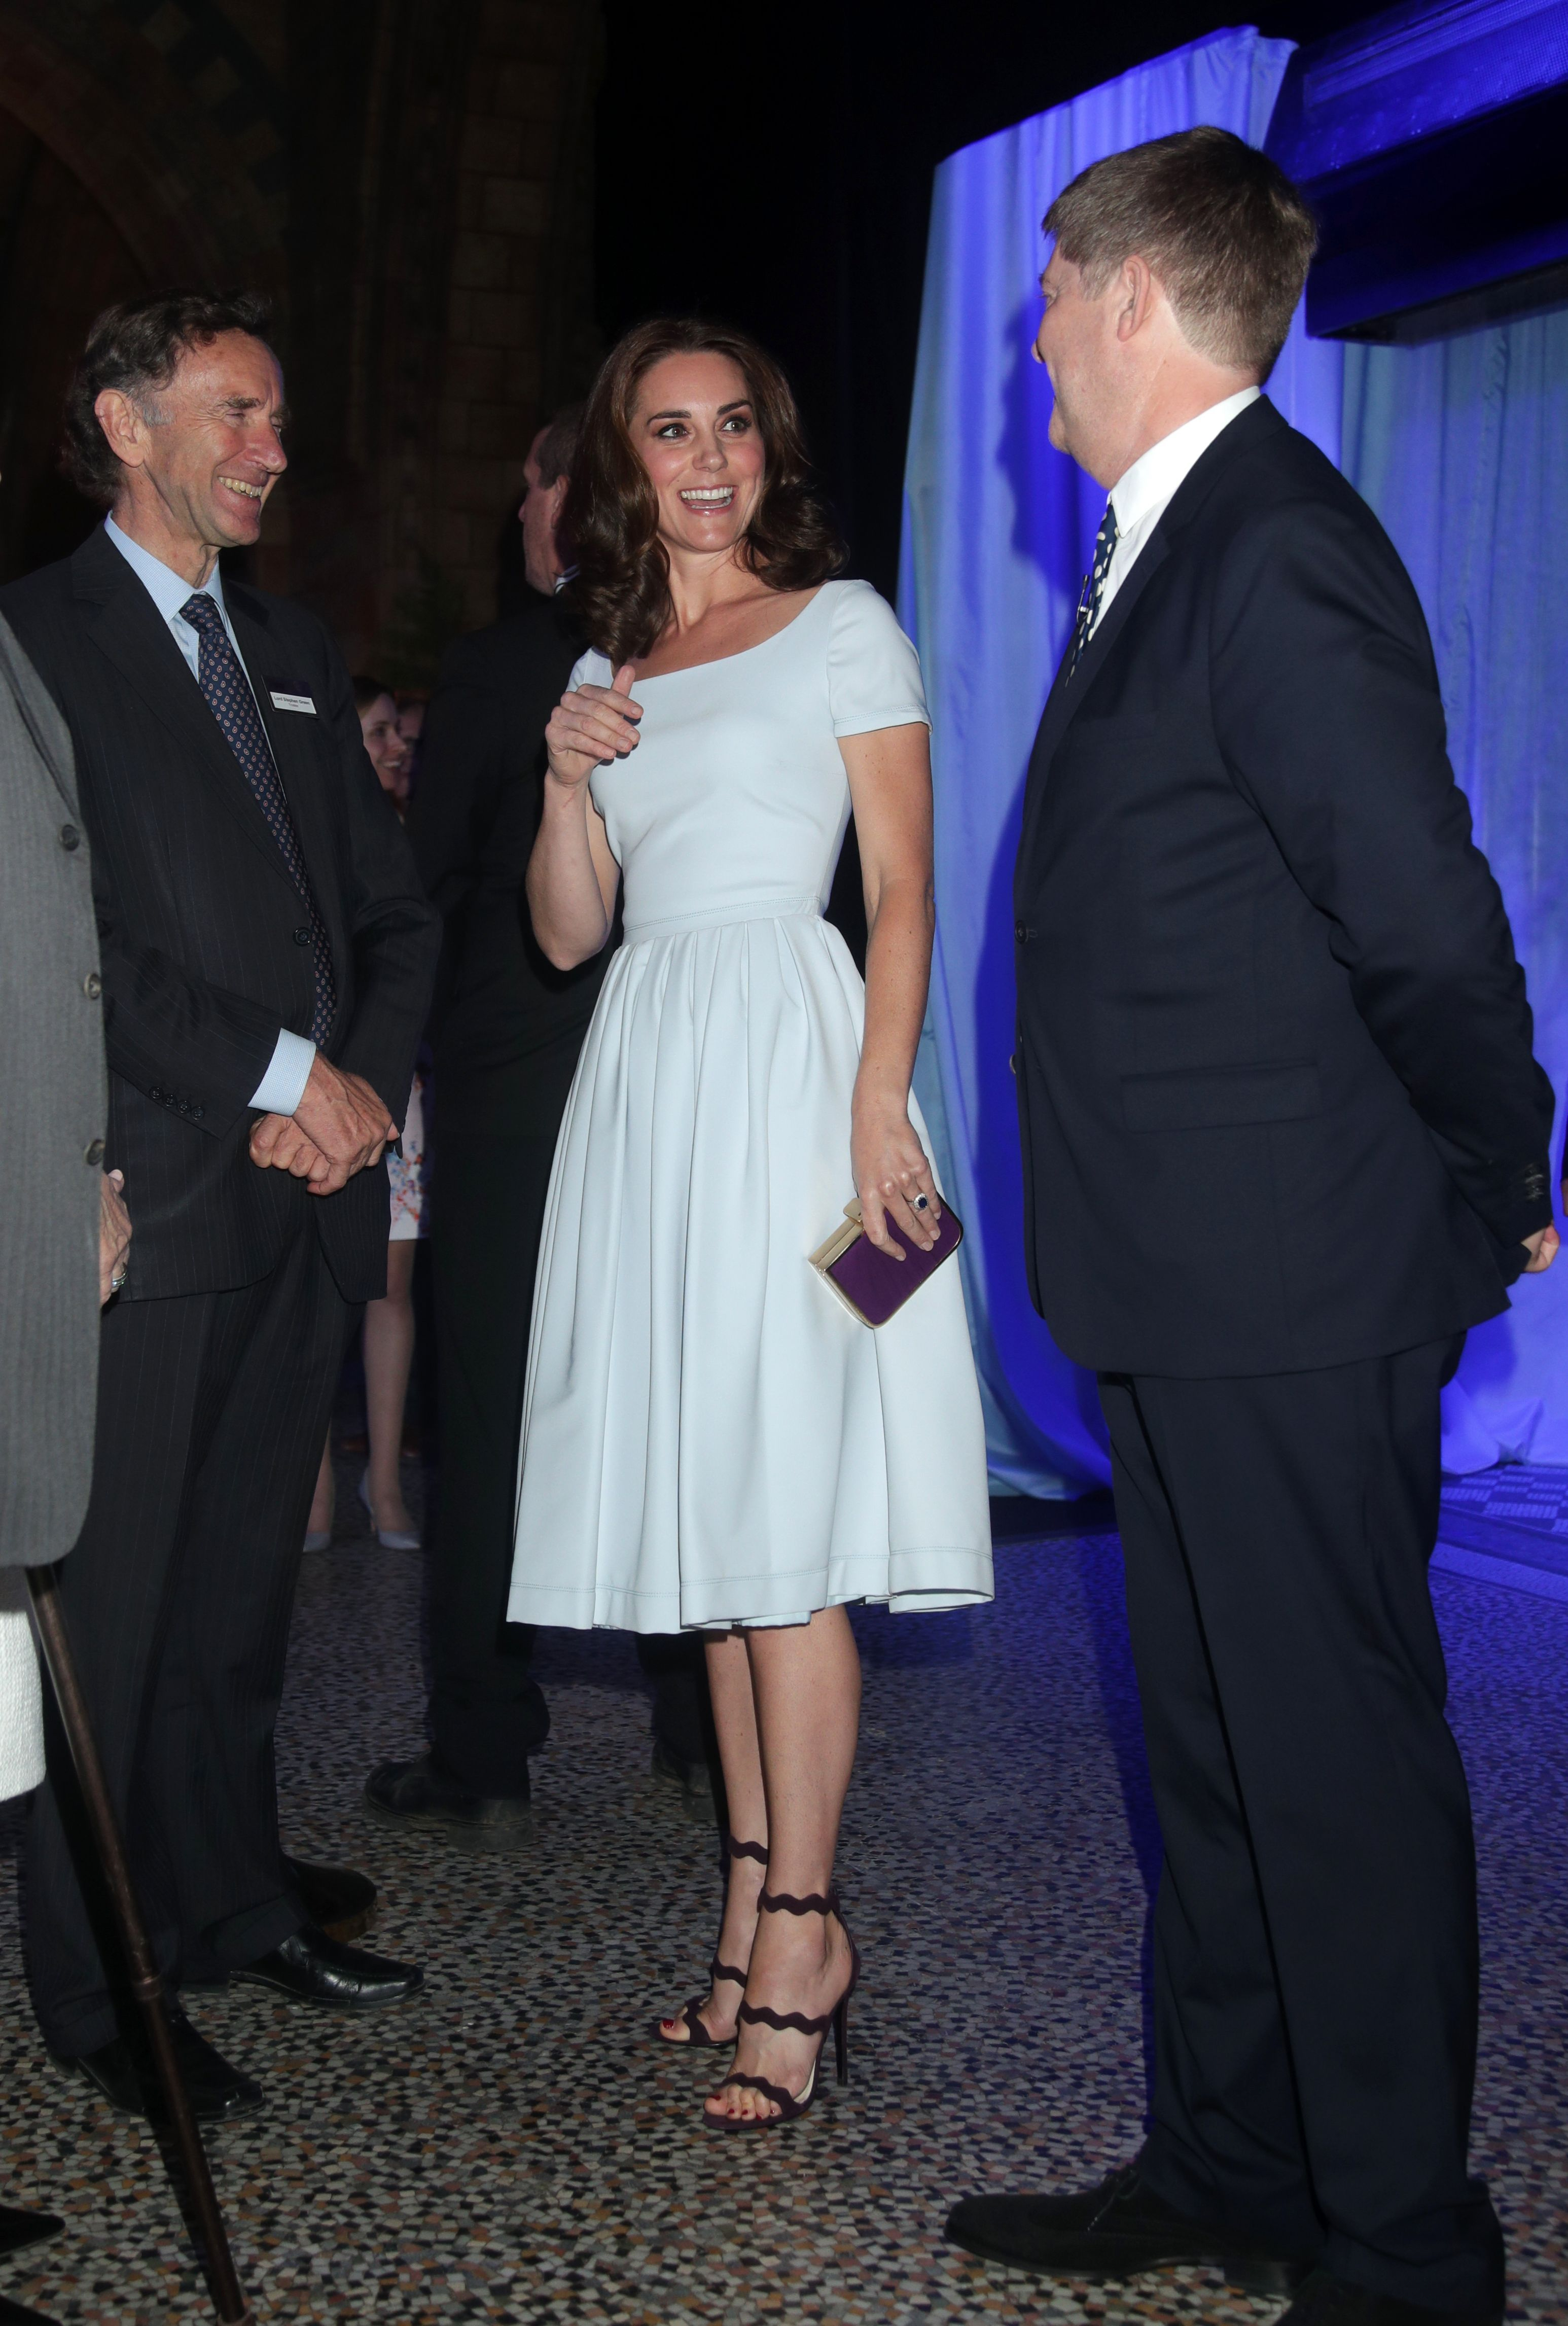 e1e3c81240c9 Kate Middleton Best Fashion and Style Moments - Kate Middleton's Favorite  Outfits